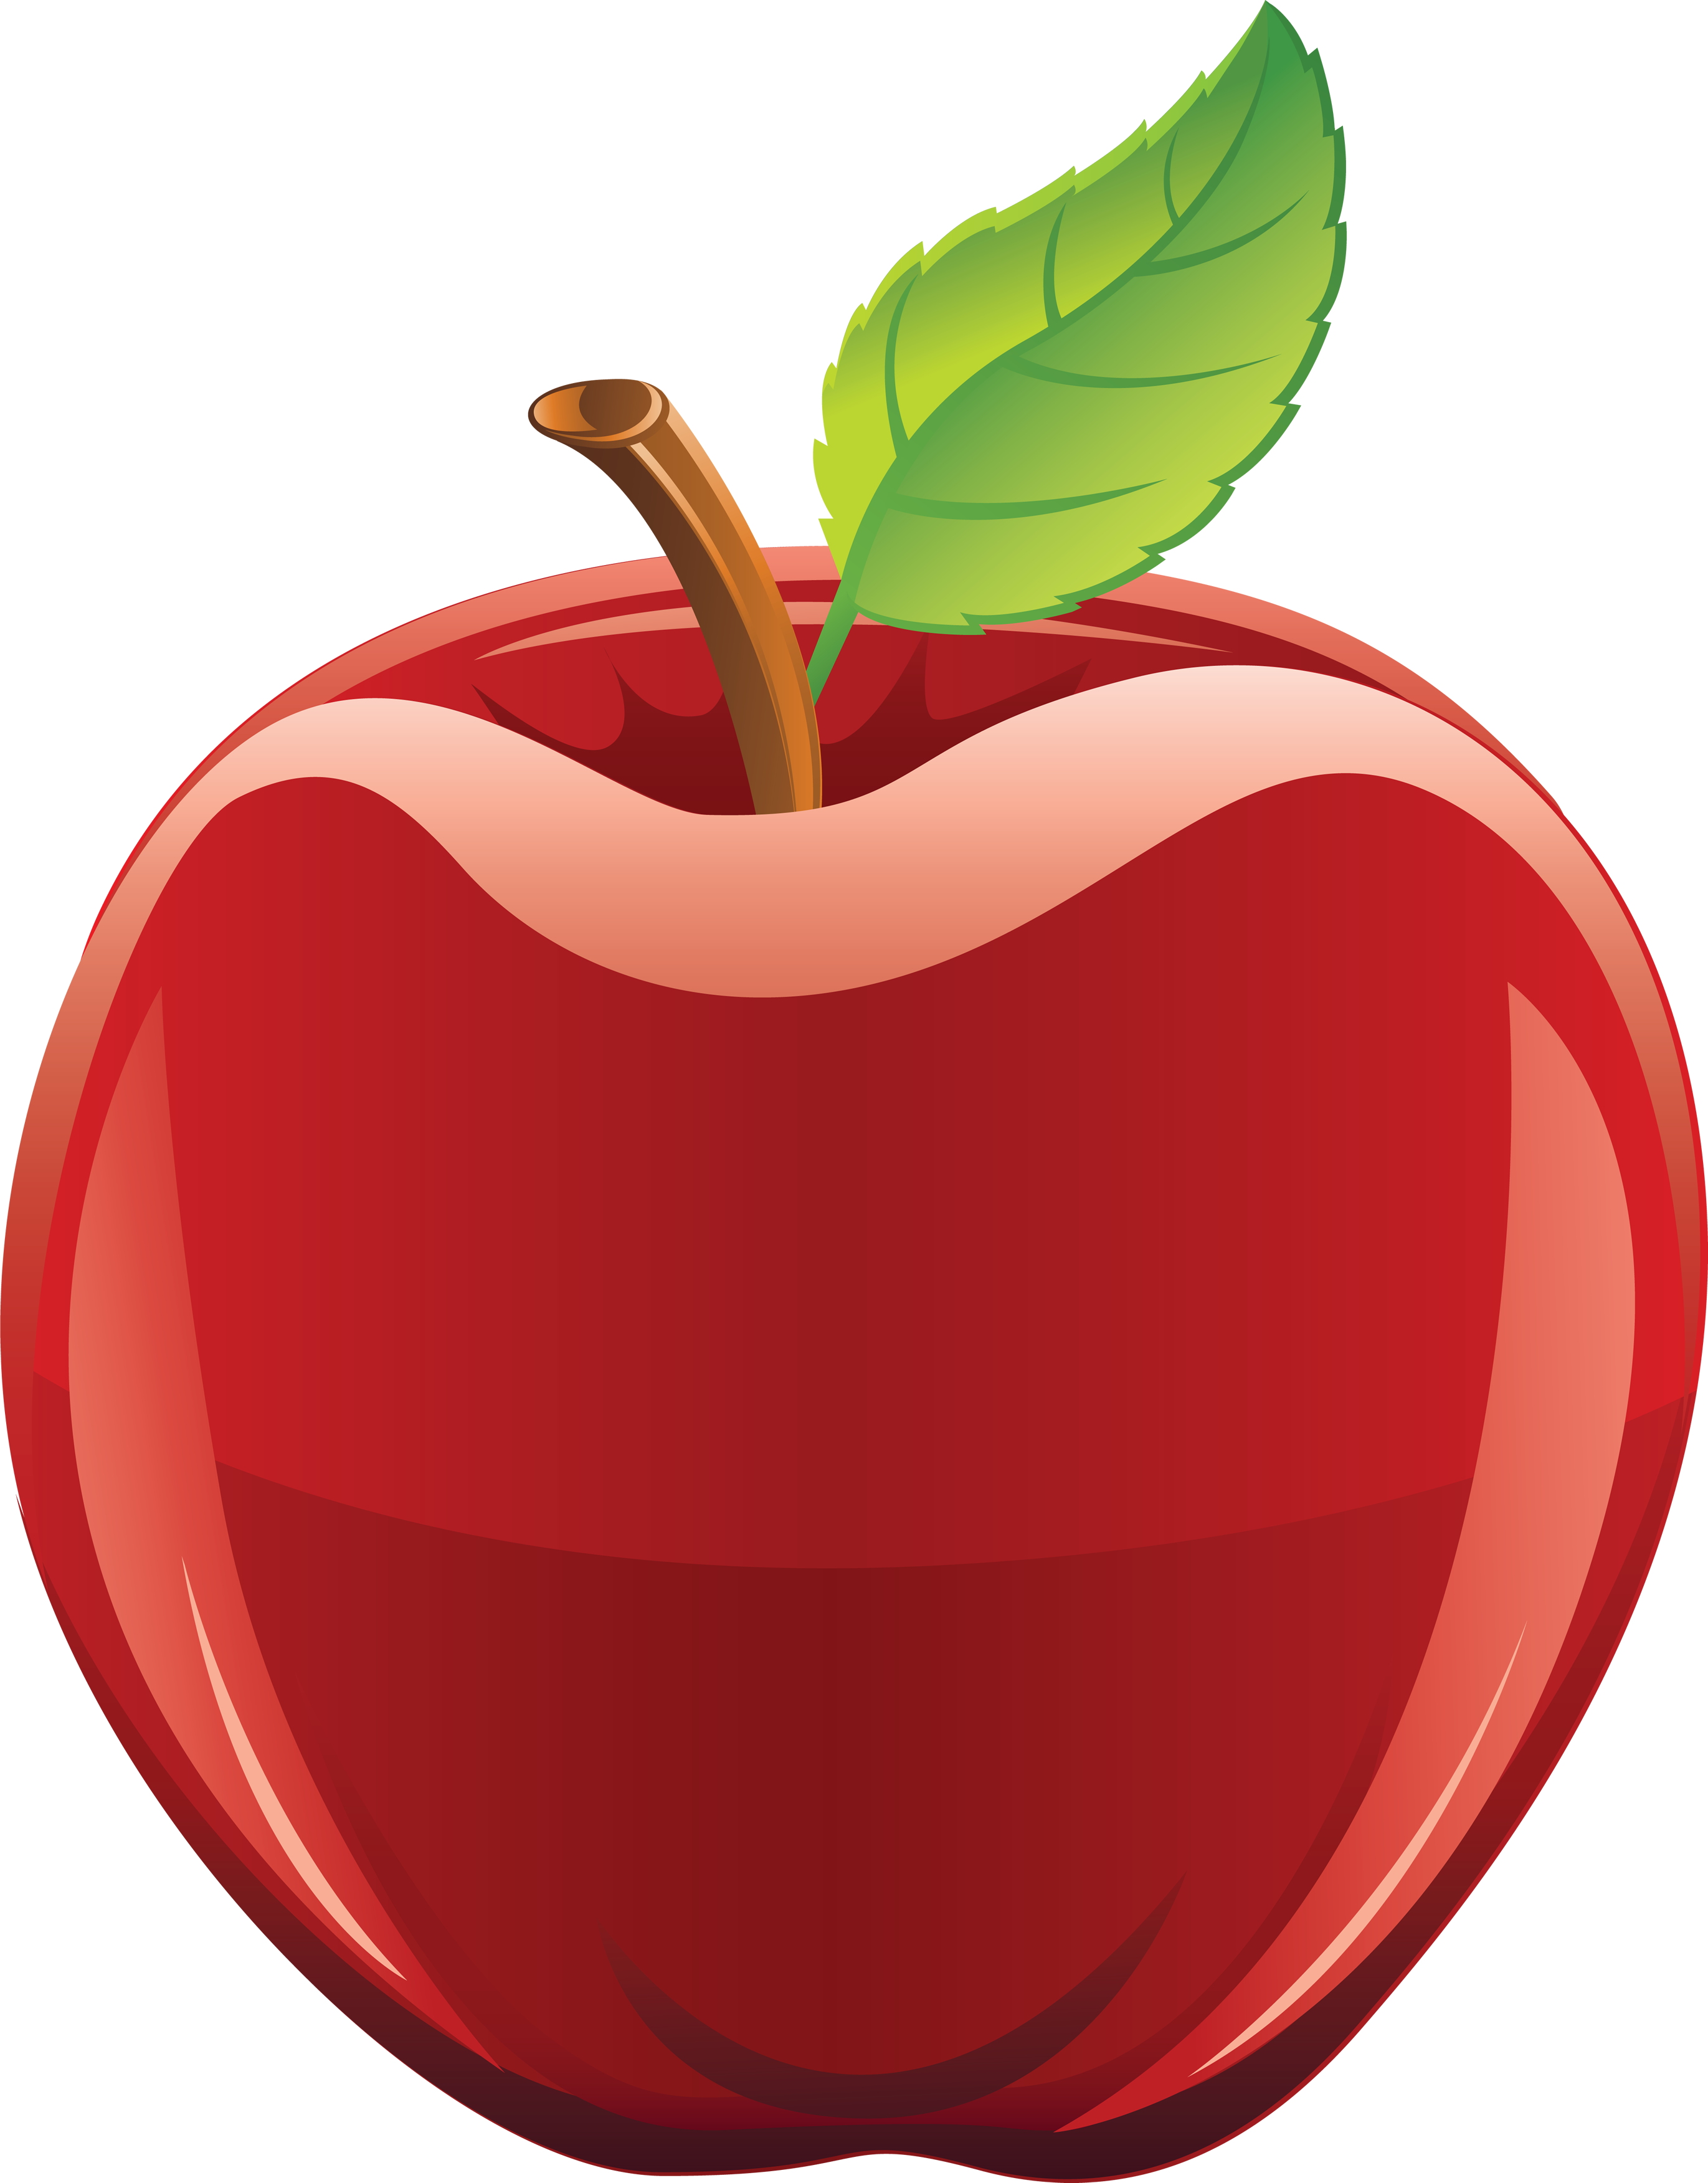 Library clipart background. Apple png images free